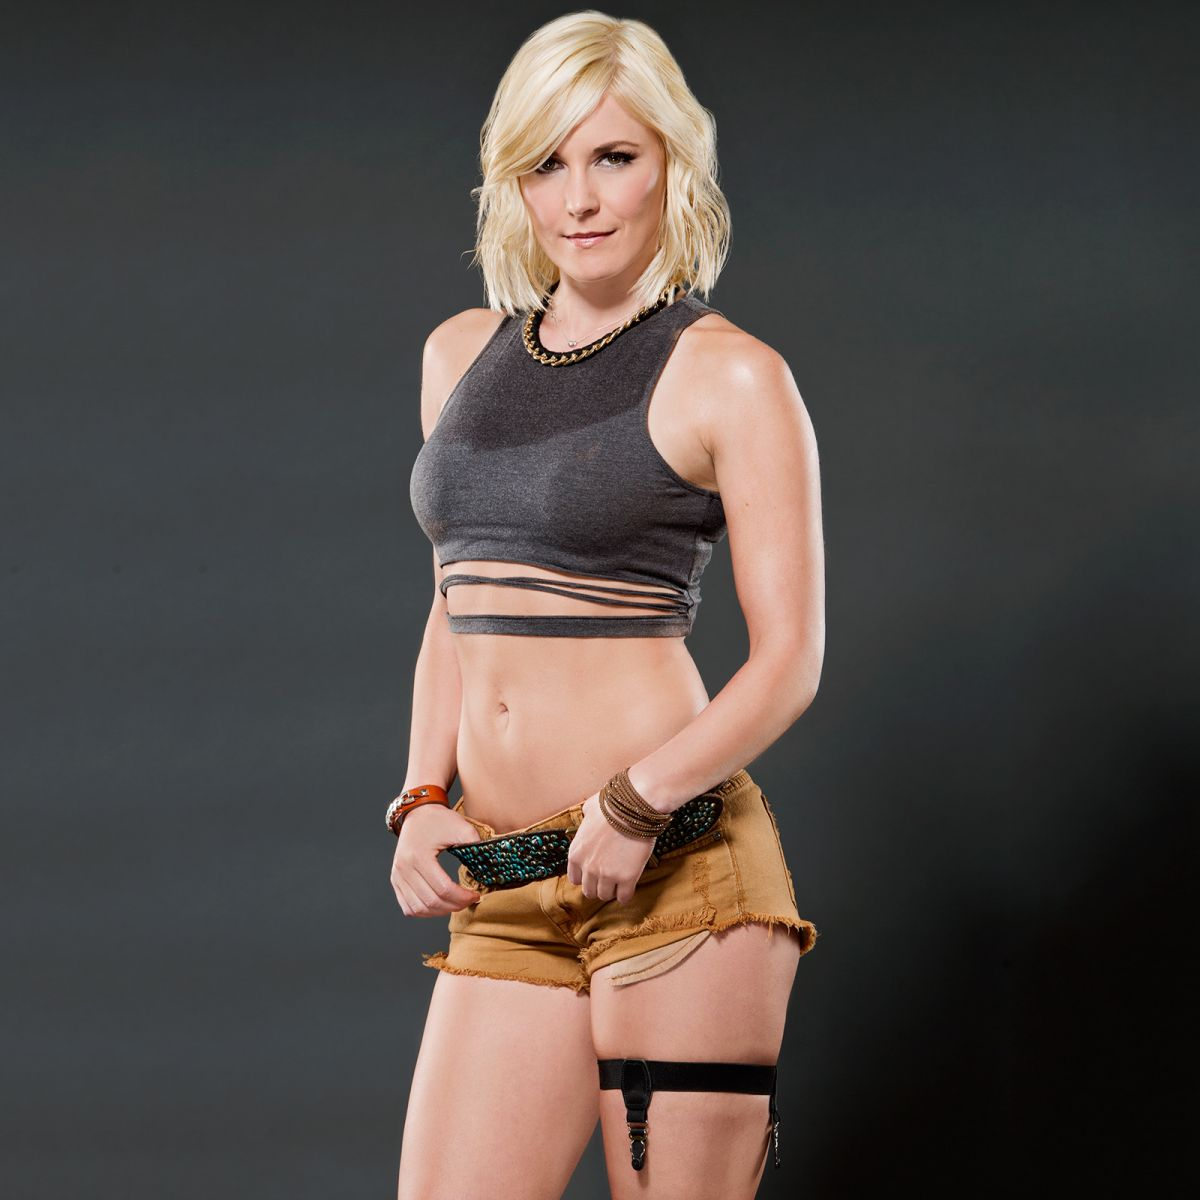 Renee young sexy photographs